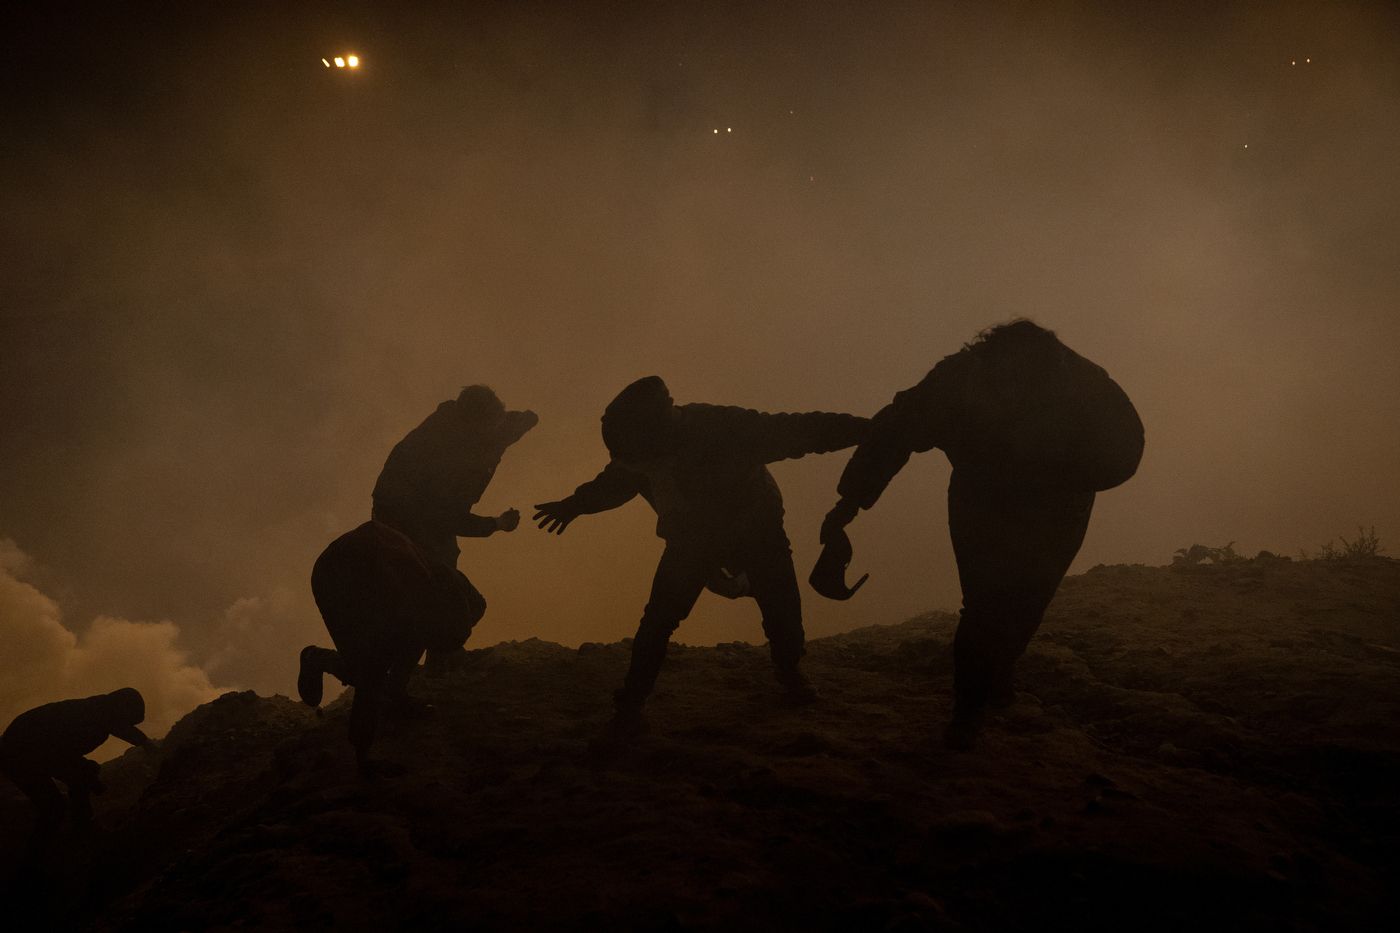 Migrants, journalists and U.S. activists run from tear gas on January 1, 2019 after US authorities fired tear gas over the border wall in Tijuana, Mexico. A group of approximately 150 migrants attempted to cross the border but their attempt was thwarted when CBP discovered where they were hiding and used several crowd control techniques to disperse the group. Photo by Kitra Cahana / MAPS